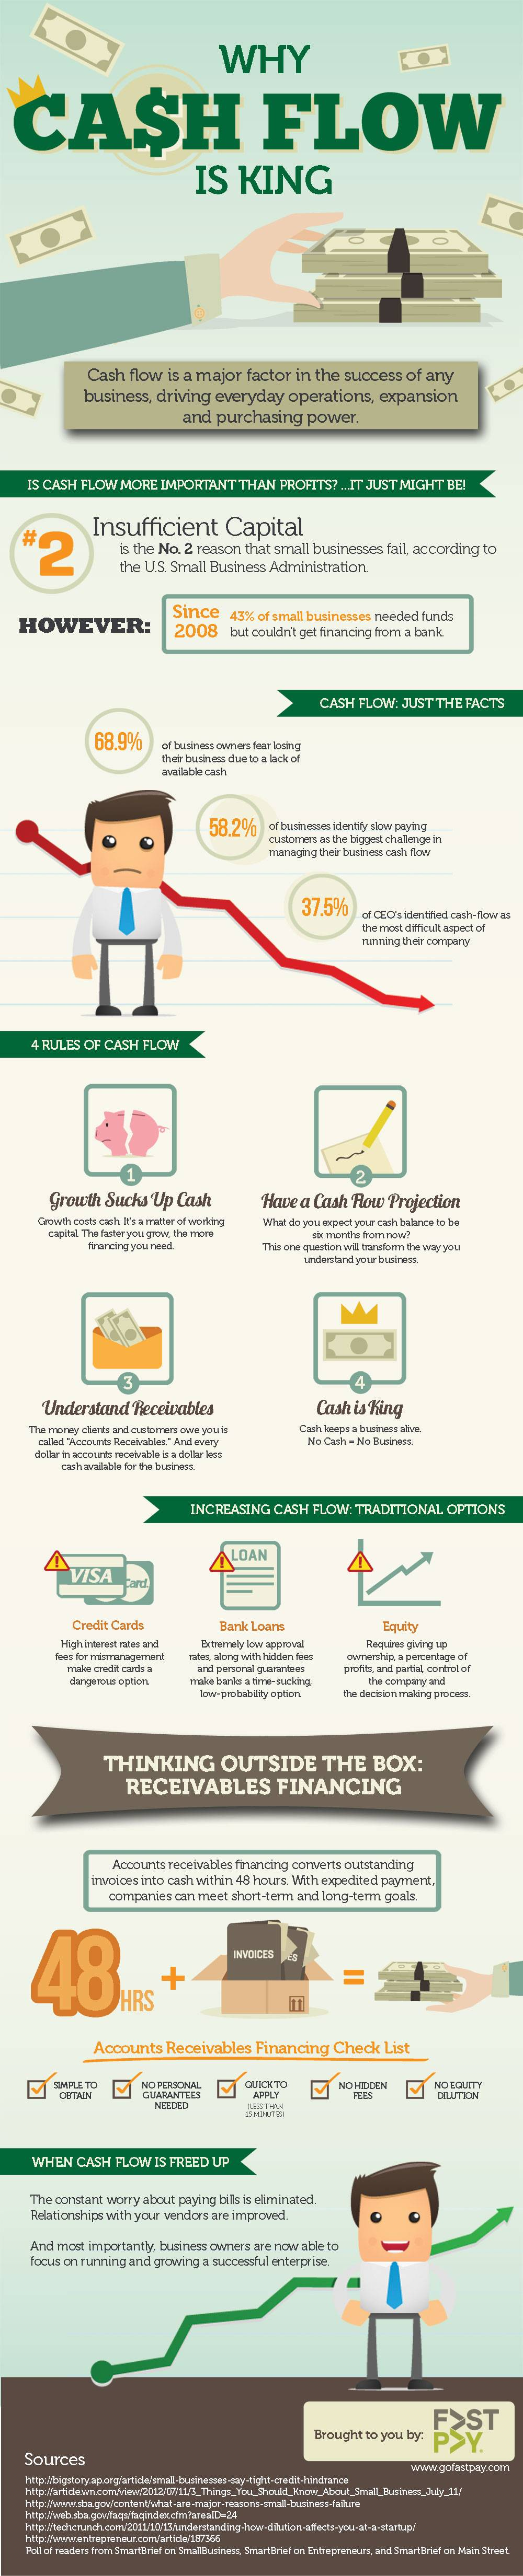 Cash-Flow-infographic